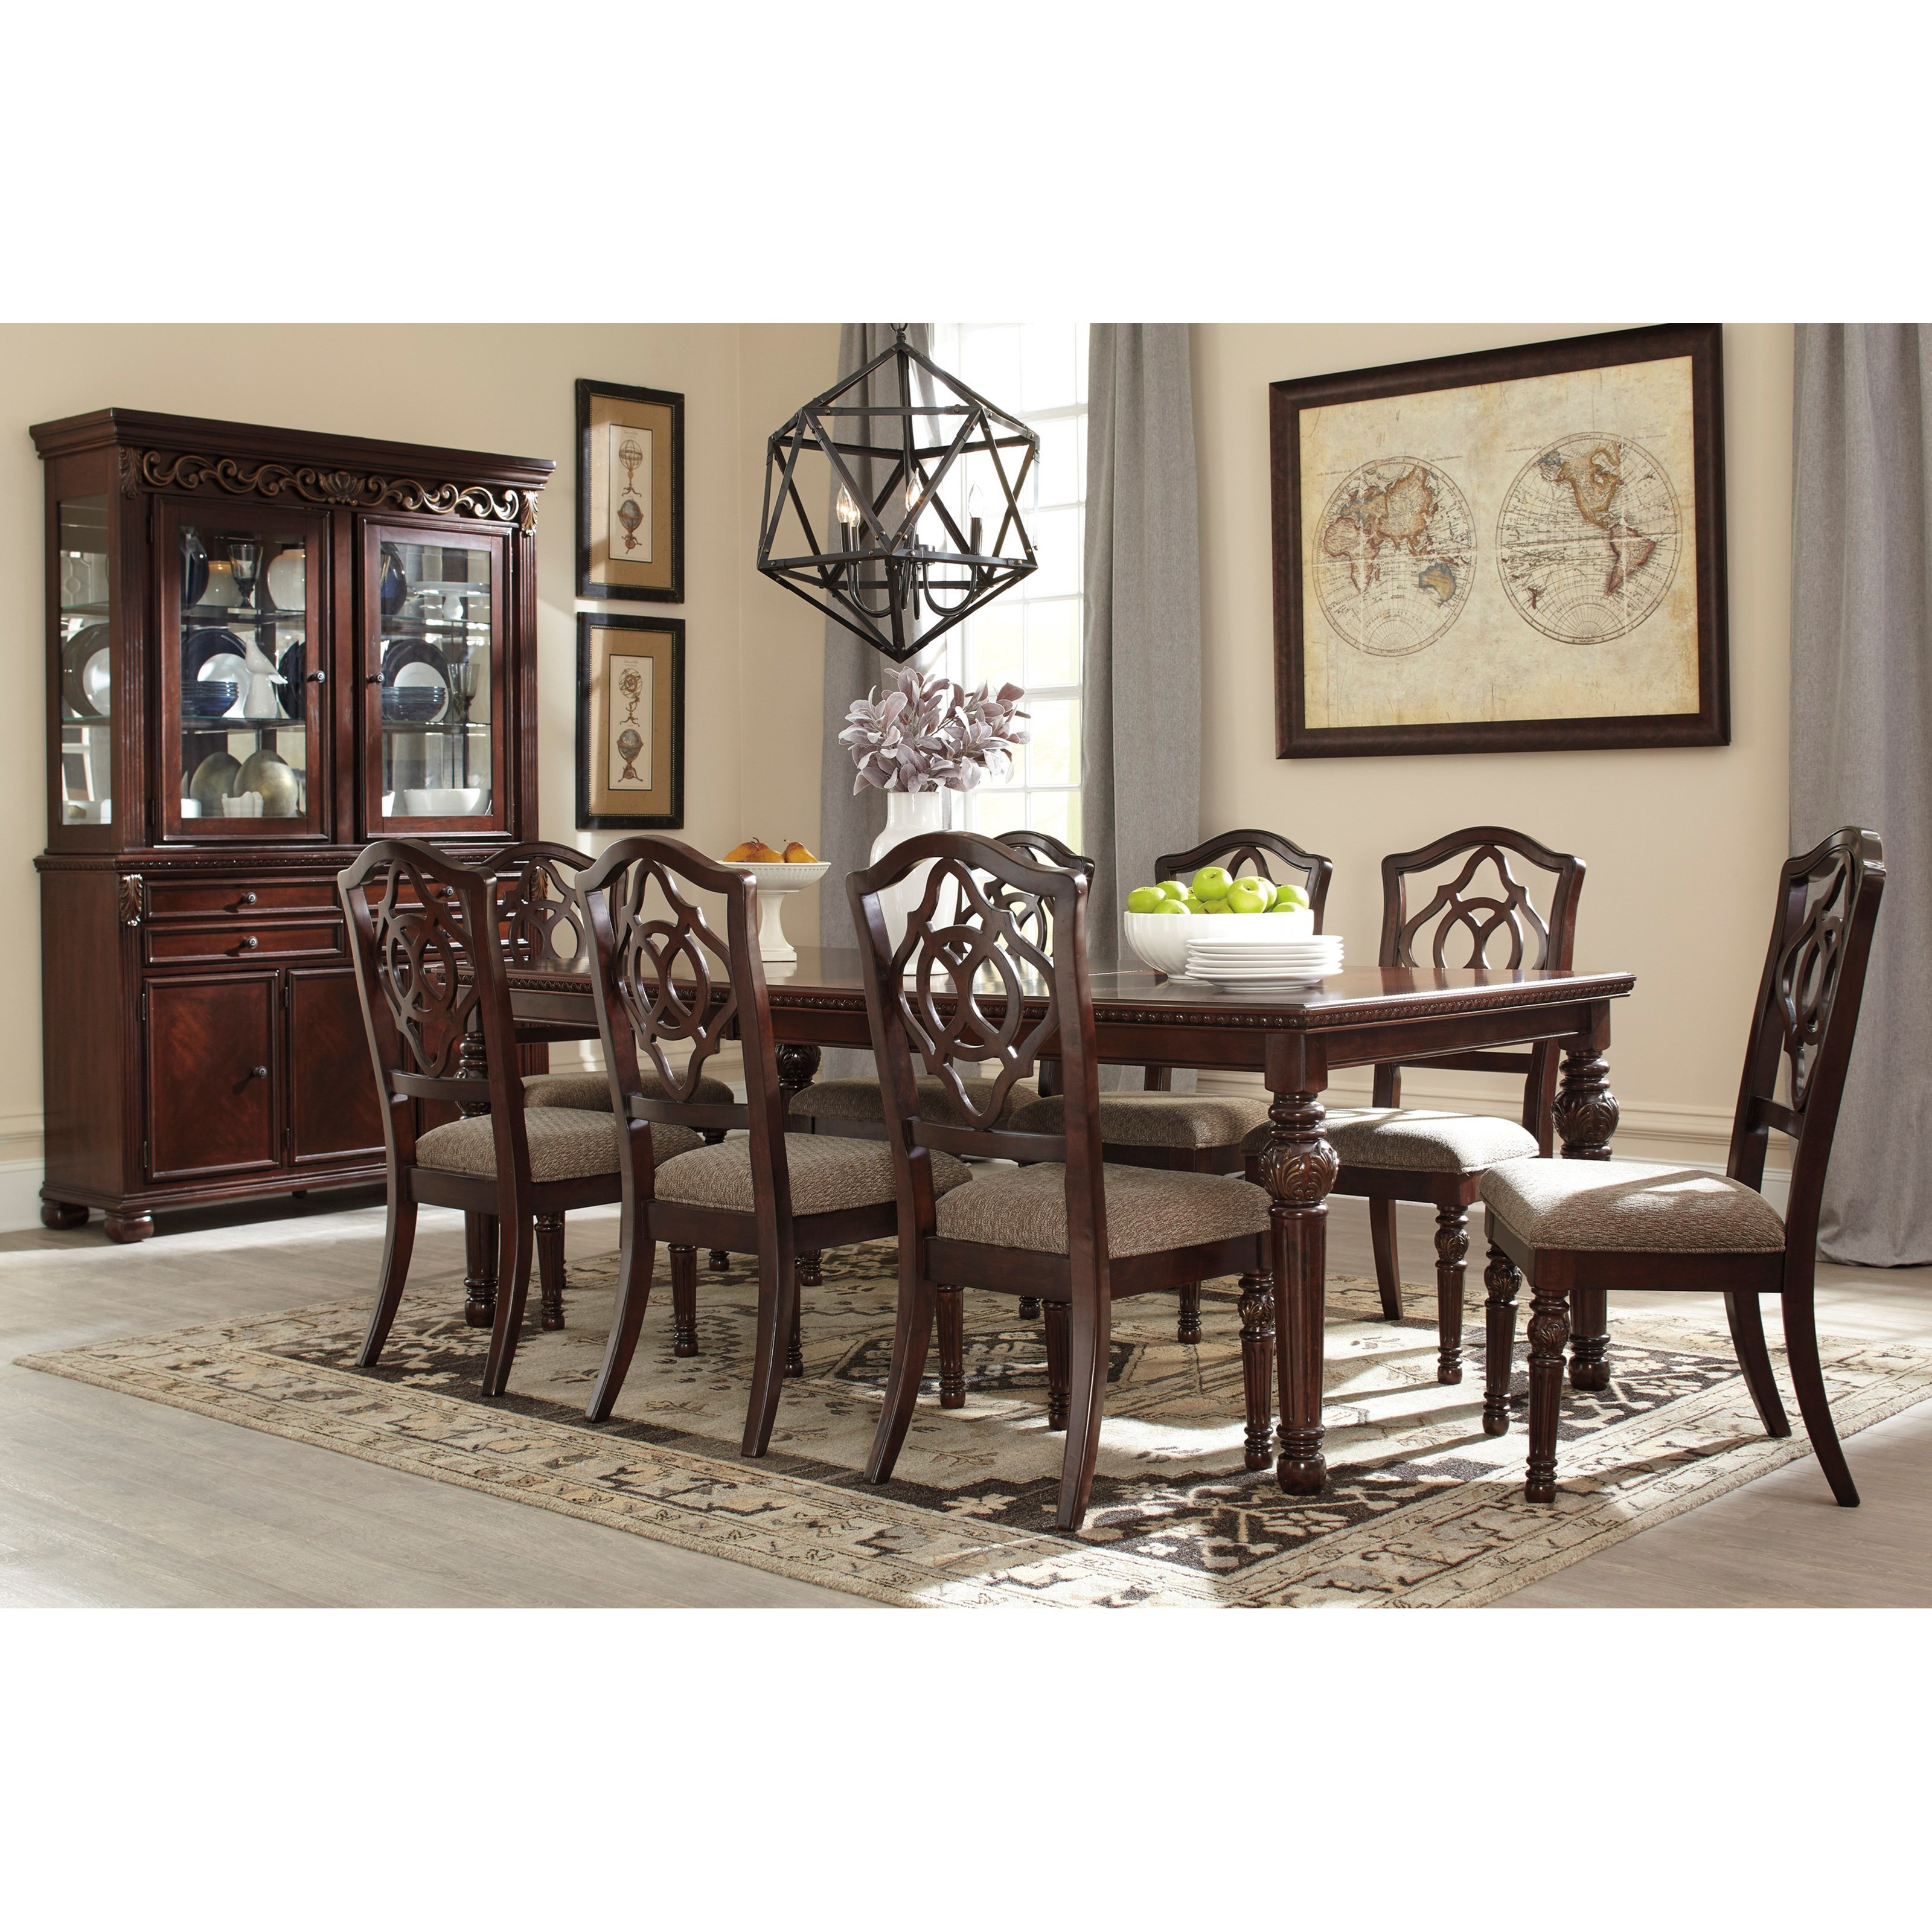 Signature design by ashley leahlyn casual dining room for Casual dining room furniture